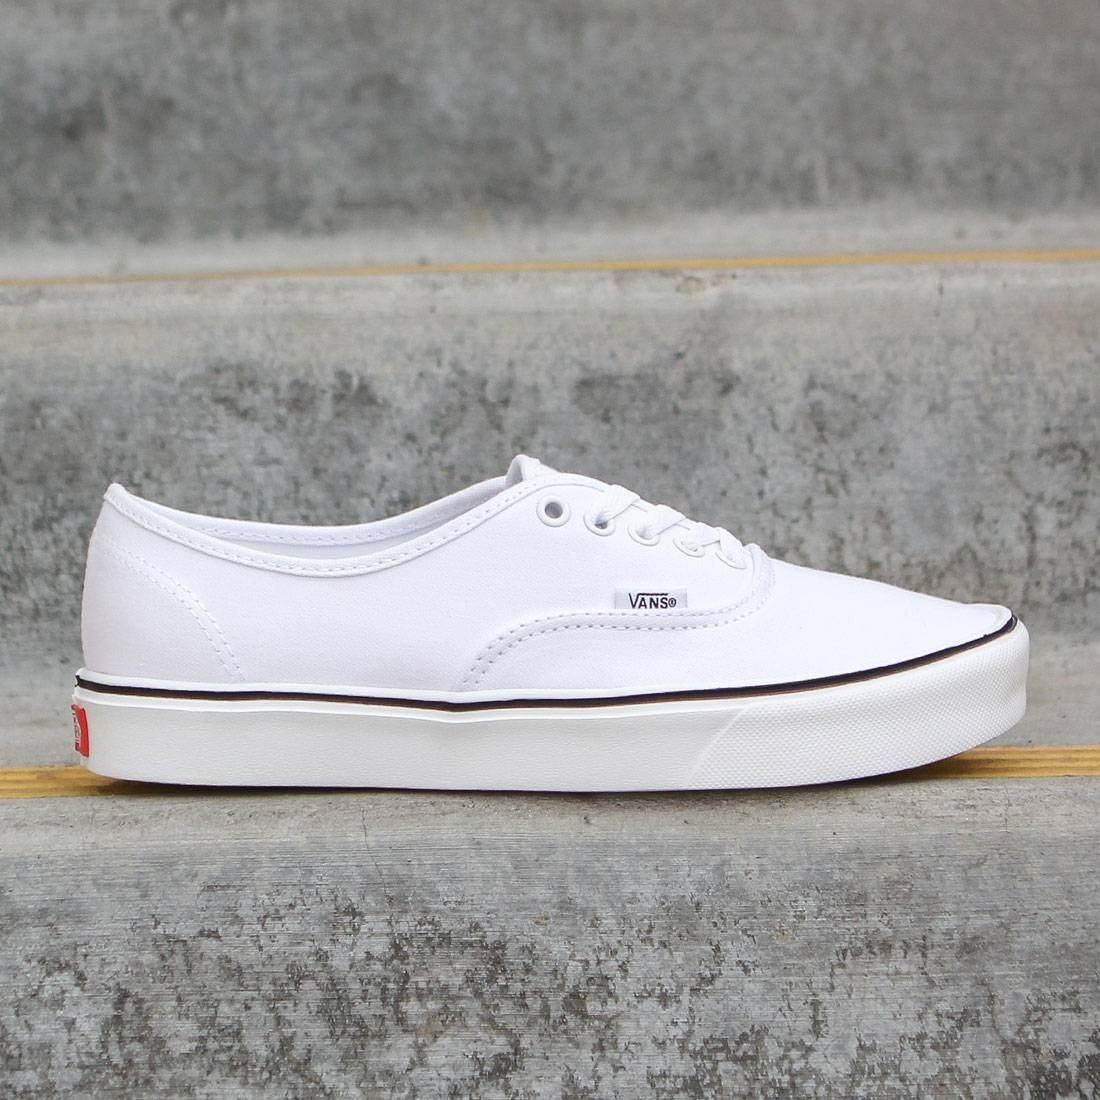 0a740e4260b853 Buy vans white canvas shoes - 63% OFF! Share discount